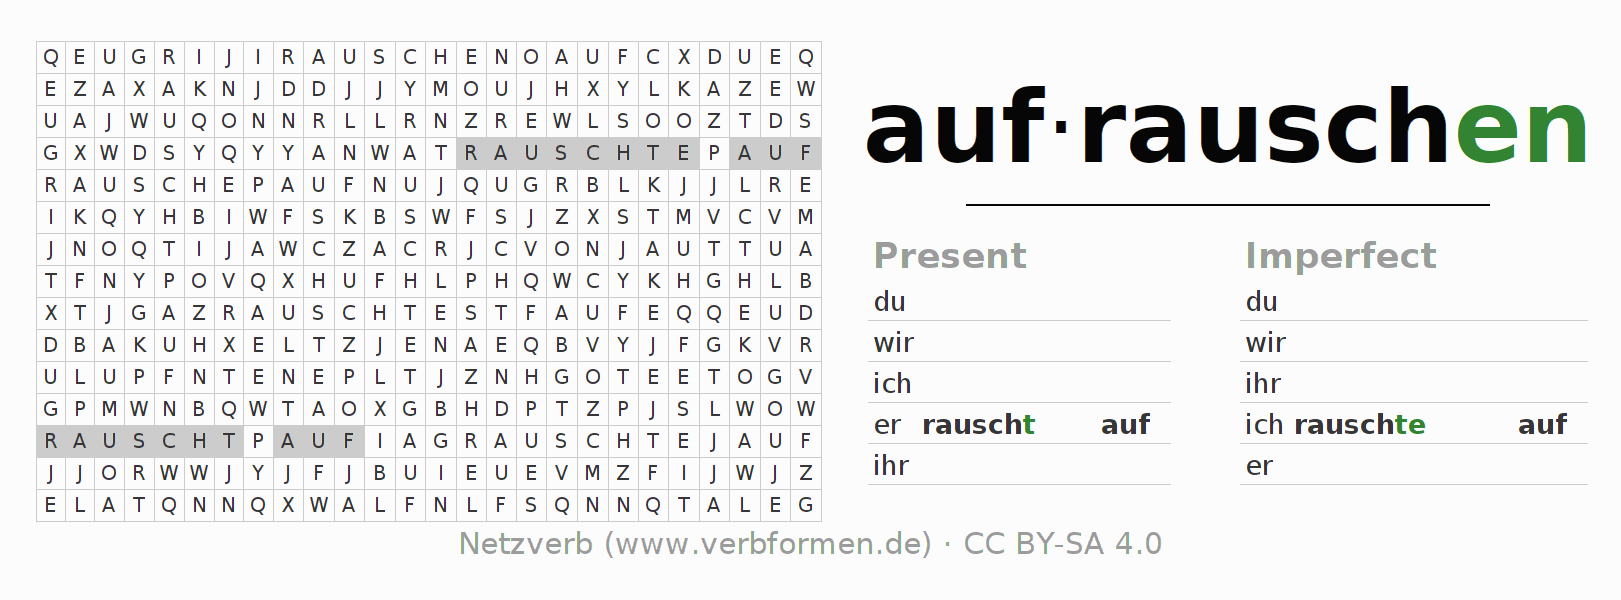 Word search puzzle for the conjugation of the verb aufrauschen (ist)